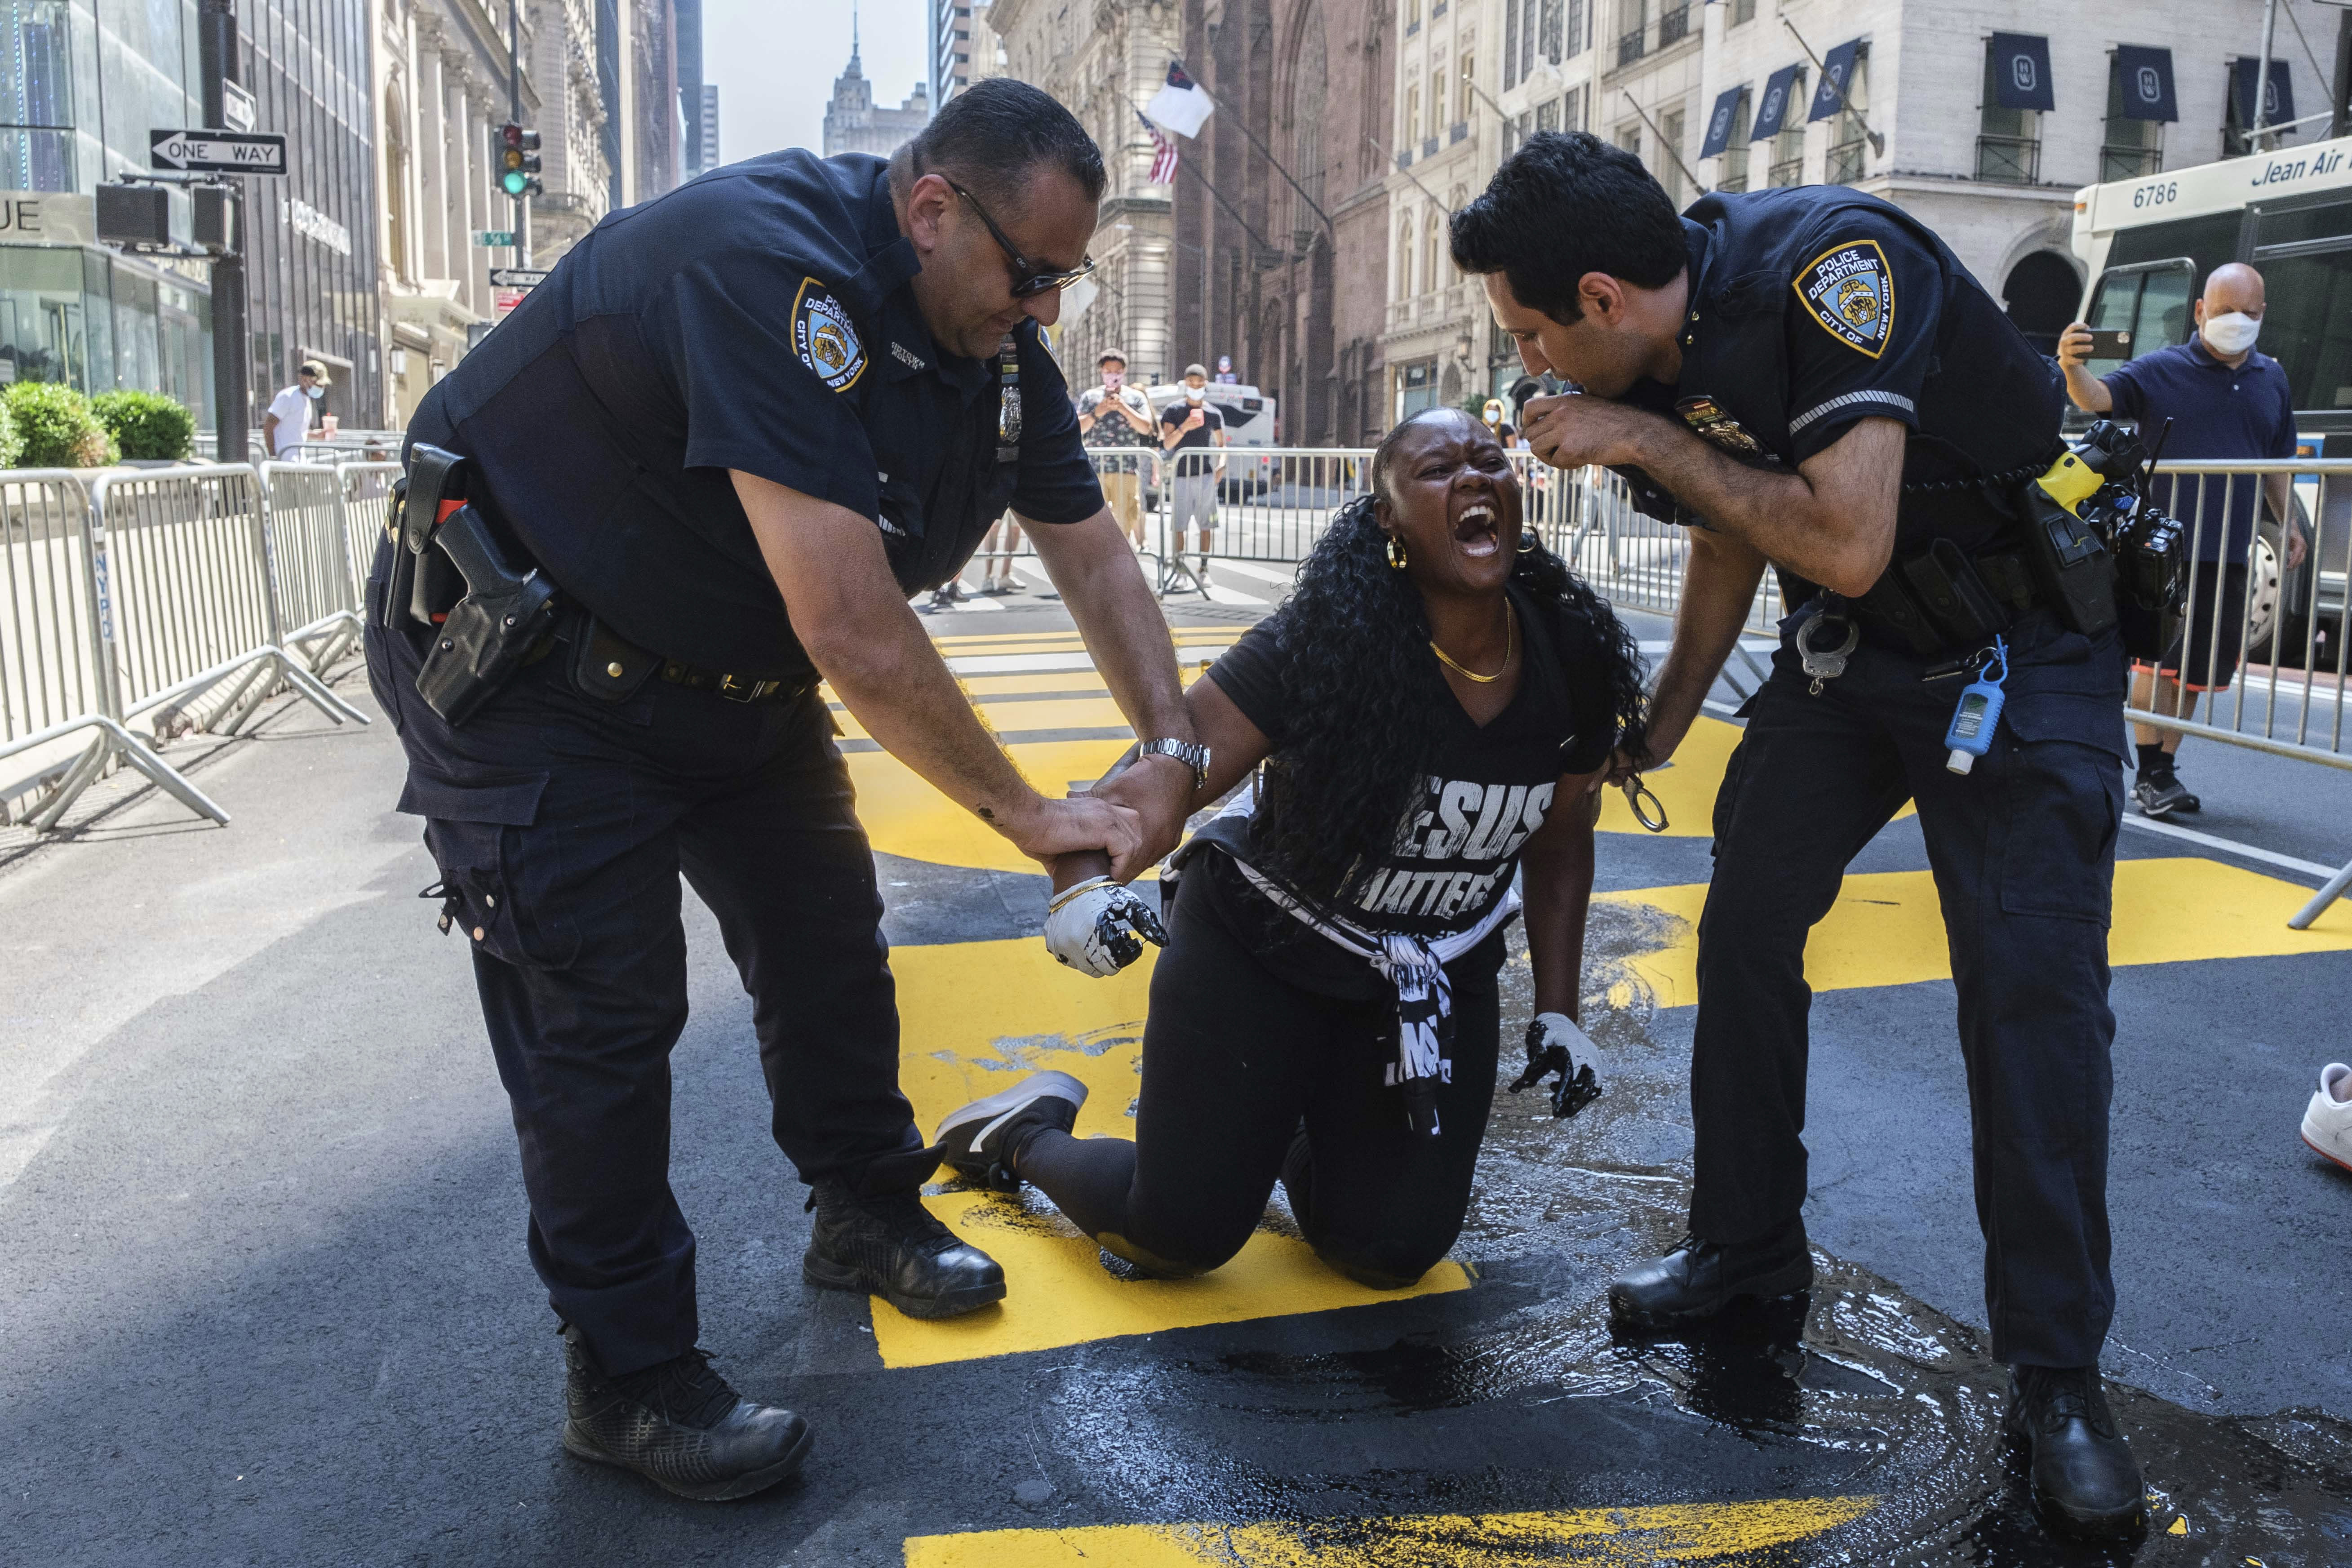 """New York Police Department officers attempt to detain a protester who defaced with black paint the Black Lives Matter mural outside of Trump Tower on Fifth Avenue Saturday, July 18, 2020, in the Manhattan borough of New York. The """"Black Lives Matter"""" street mural in front of Manhattan's Trump Tower has been defaced with paint for the third time in a week. (AP Photo/Yuki Iwamura)"""